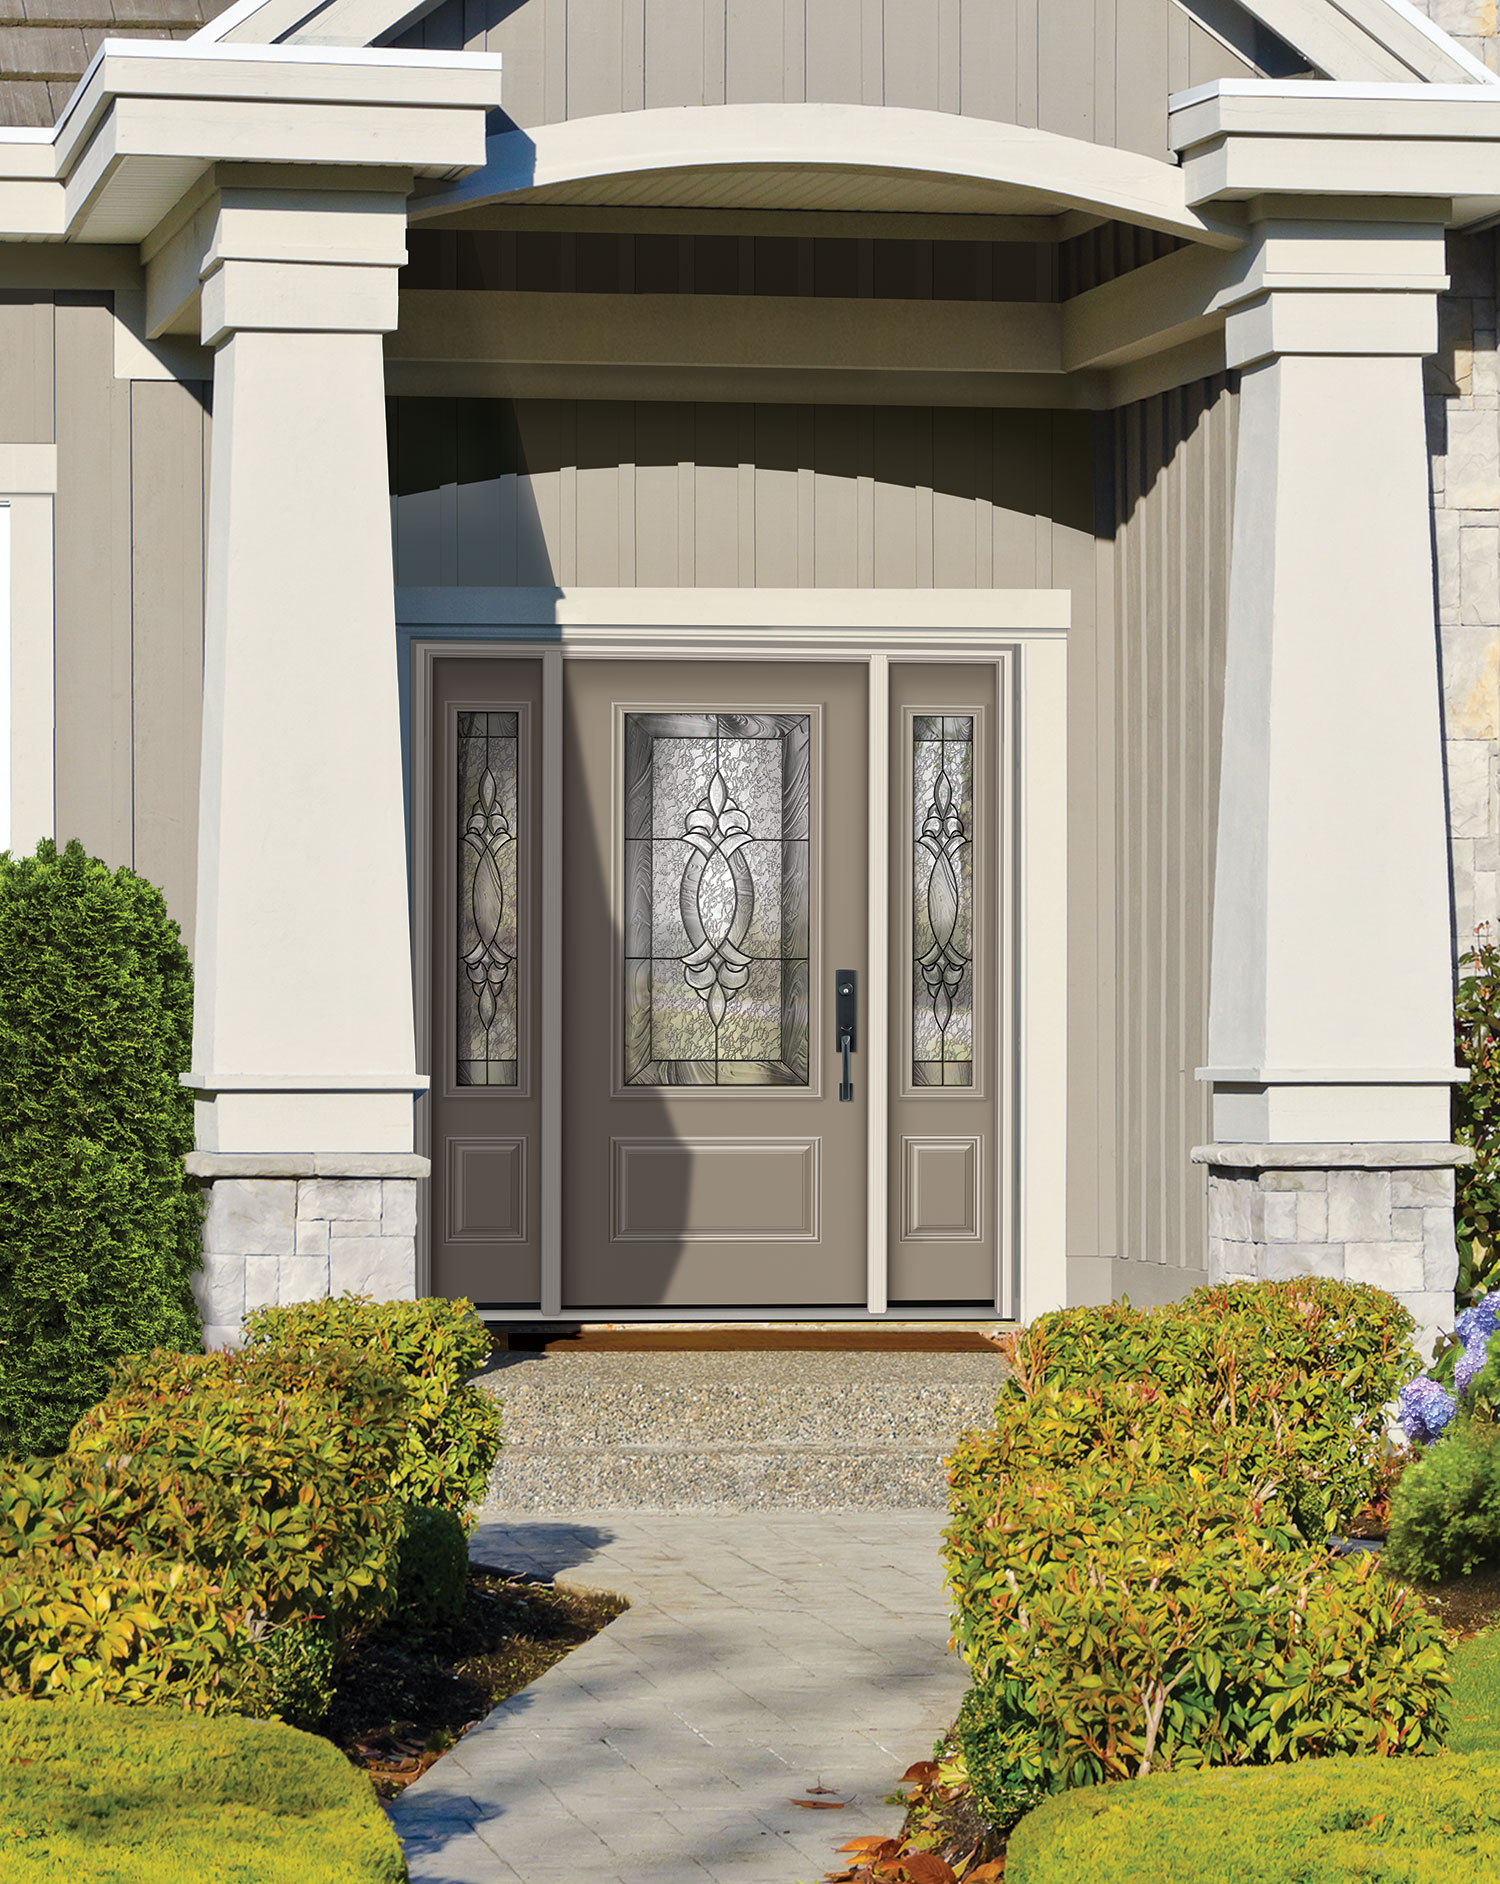 Key Features - Prefinished White Polytex surfaceDistinct raised mouldingBuilt in exclusive Colonial style door lite frameSelected 8' models available in wood edge onlyTop-quality 24-gauge galvanized construction offers superior durability and tested performanceWood Edge Construction featuring wider stiles provides enhanced security, durability and strengthPolyurethane foam core for superior thermal performance and added door strengthUnique panel configurationOpen and ready for glassFeatures built in door lite frameAluminum constructionDry glaze systemScrew cap cover on interior to cover screwsSteel doors can be customized in so many ways, from panel configuration, to glass style and design and most importantly colour.